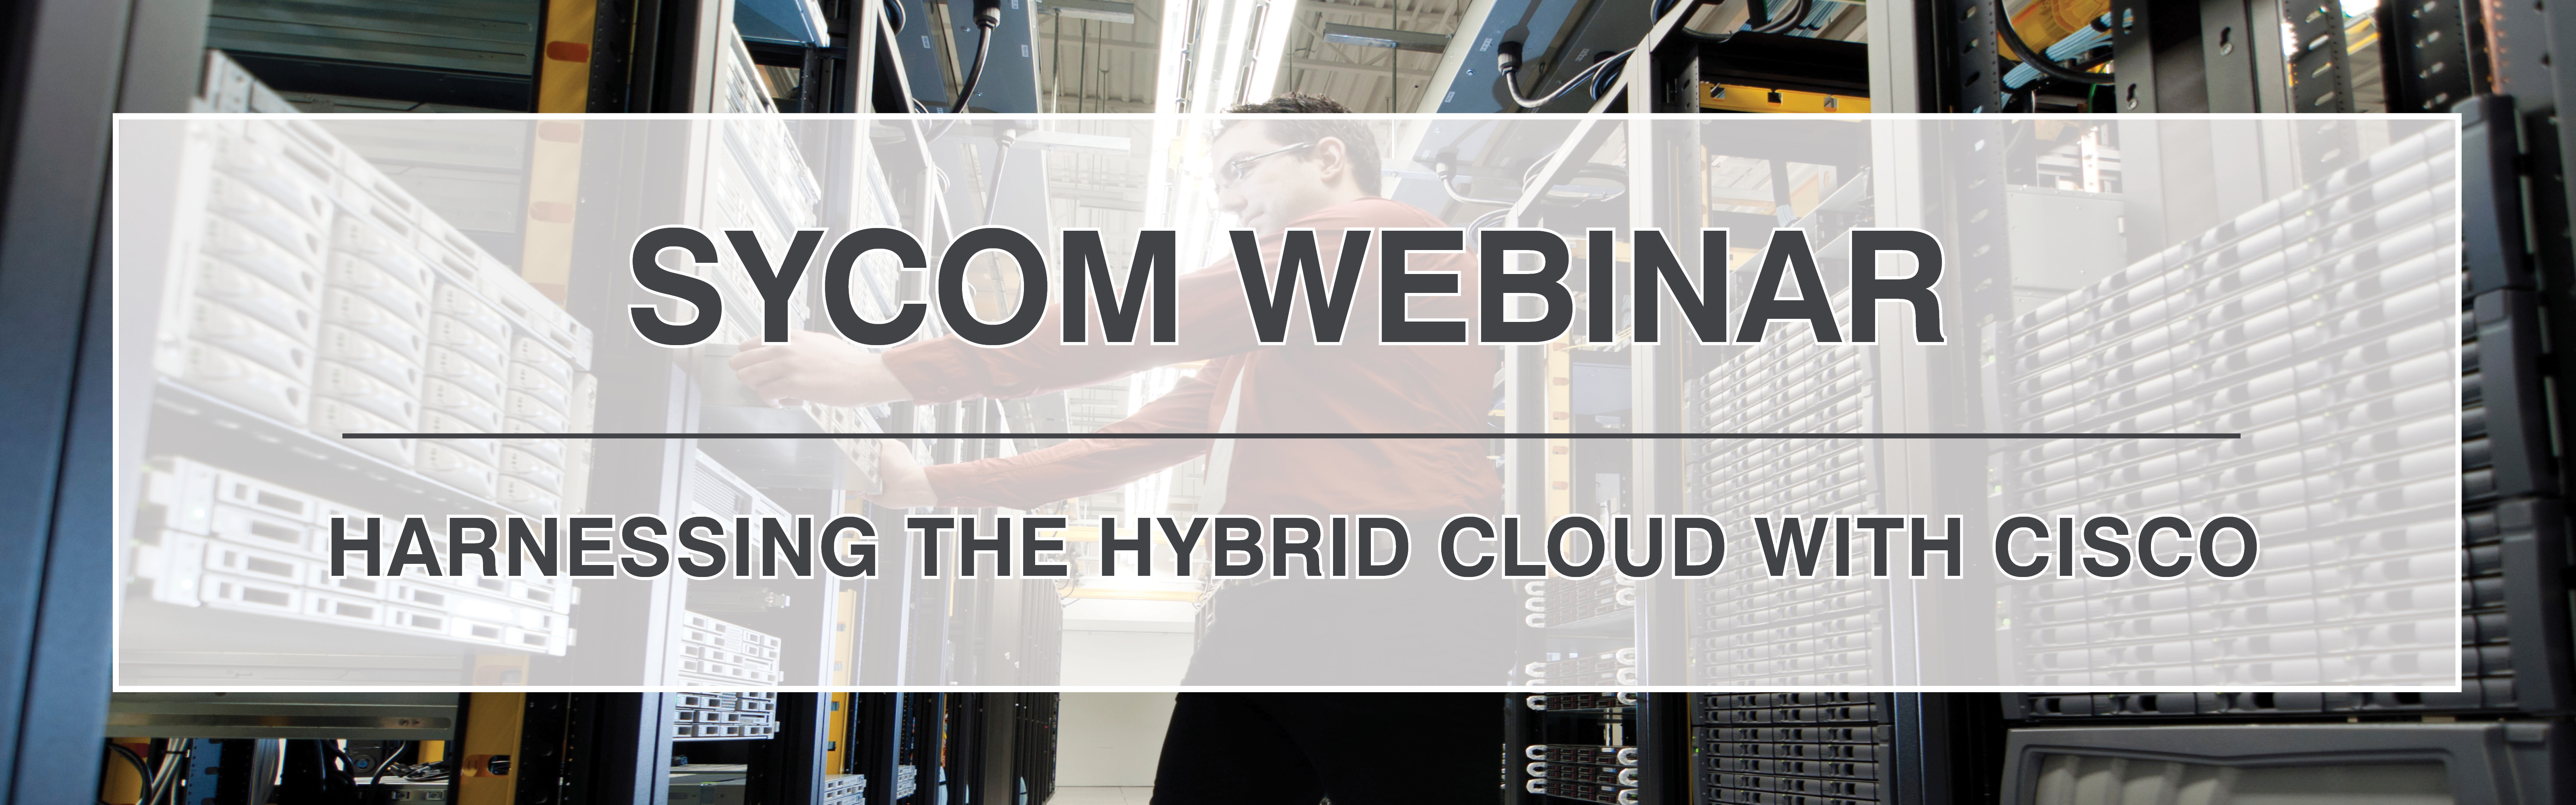 'Harnessing the Hybrid Cloud with Cisco'